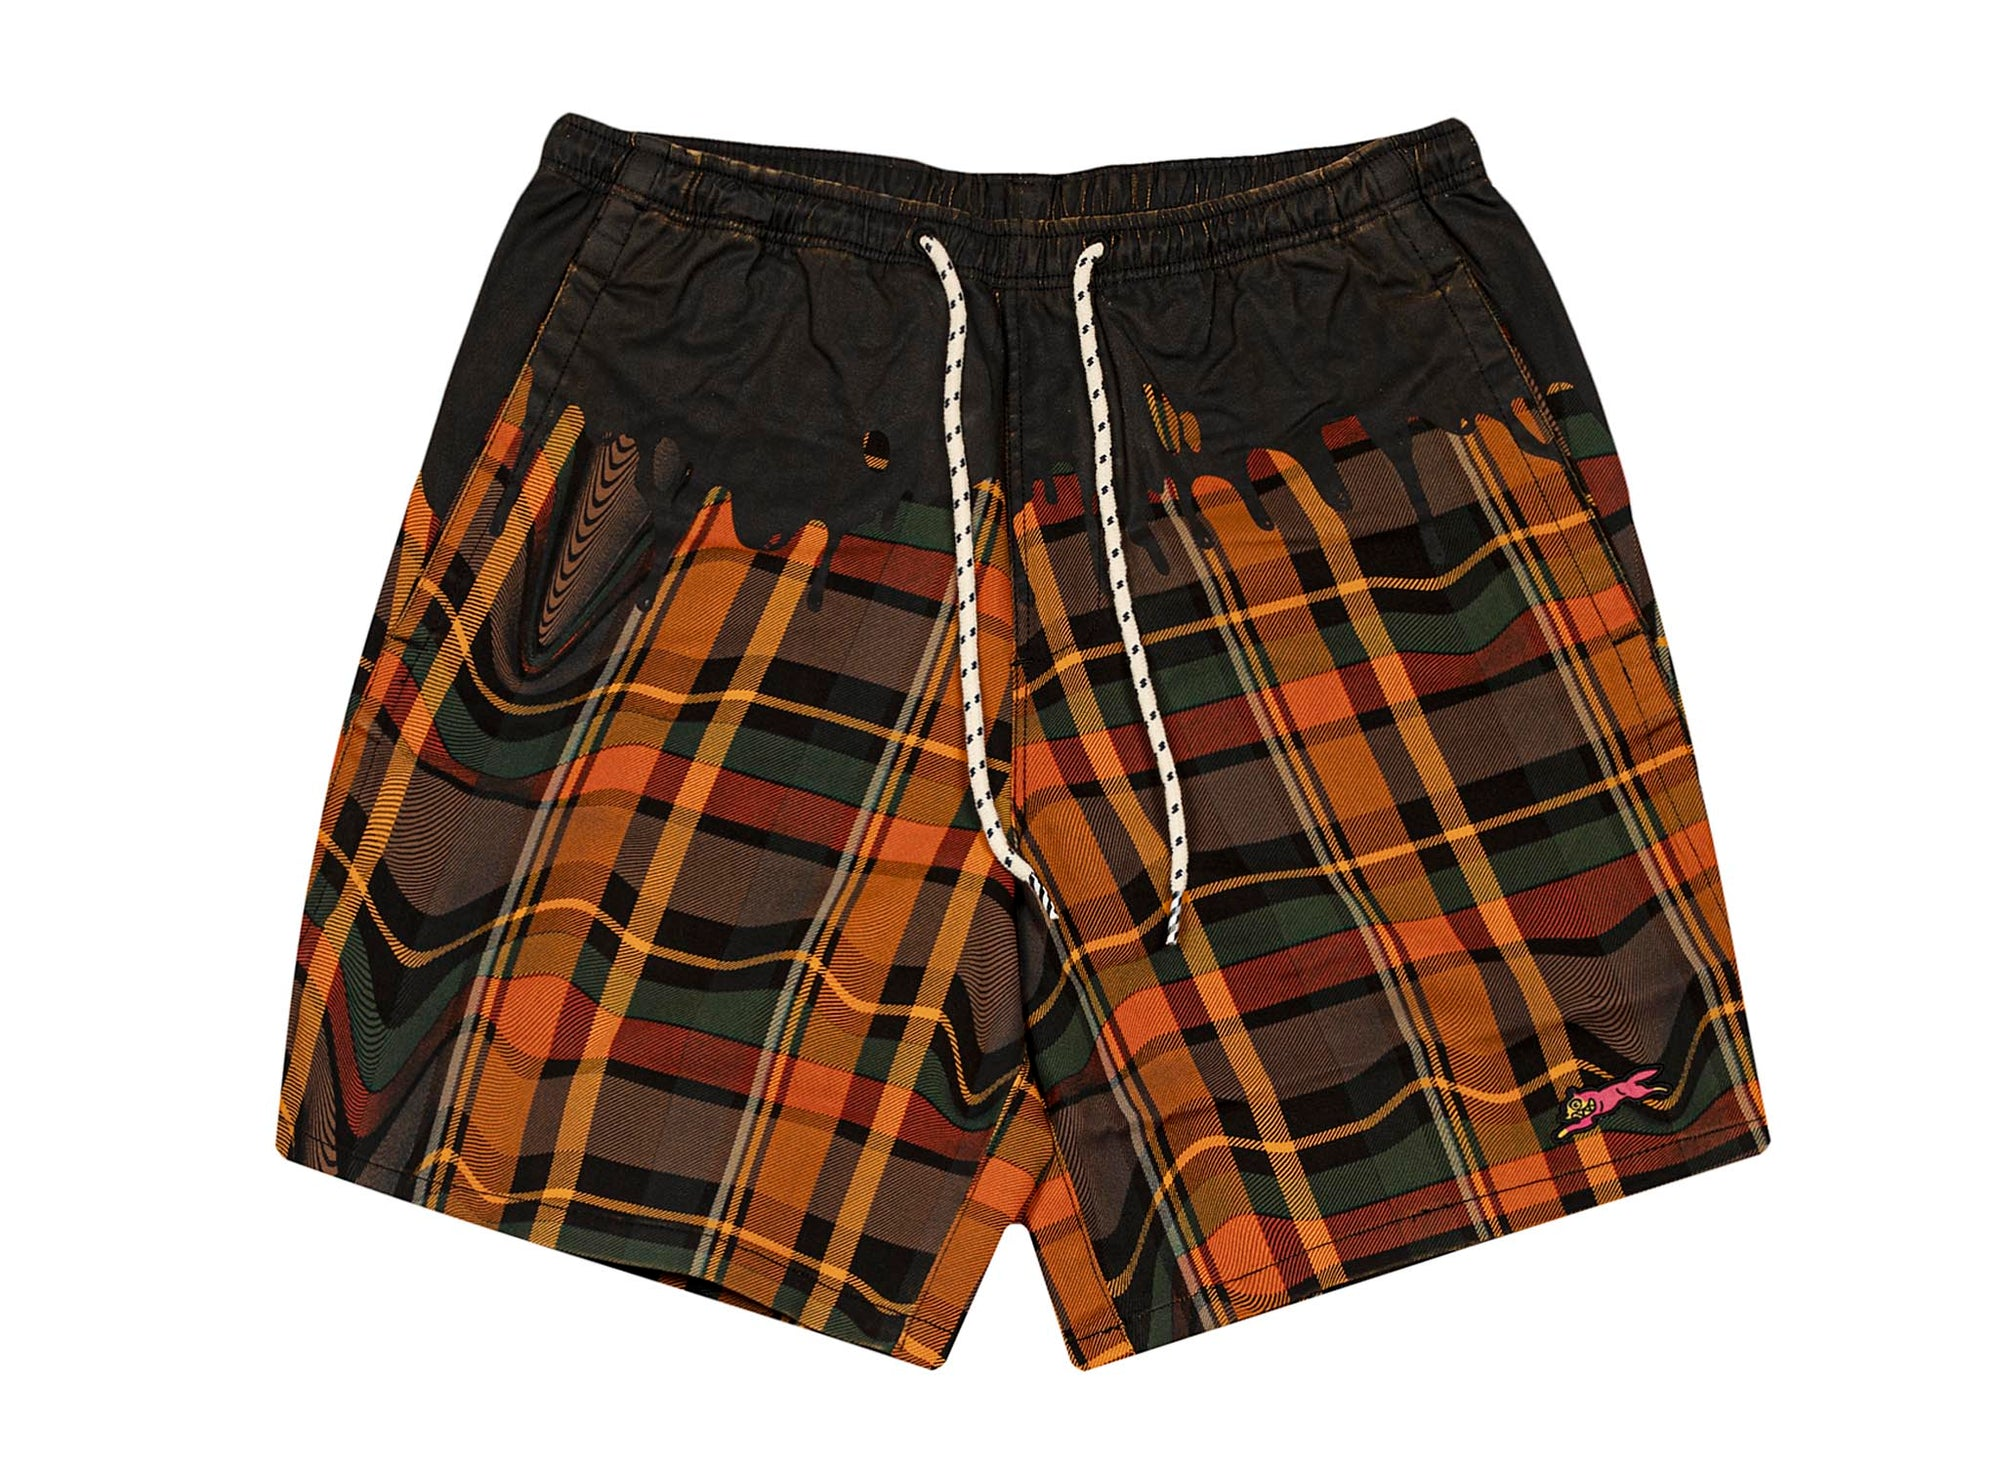 ICE CREAM Natas Shorts 'Plaid/Black'